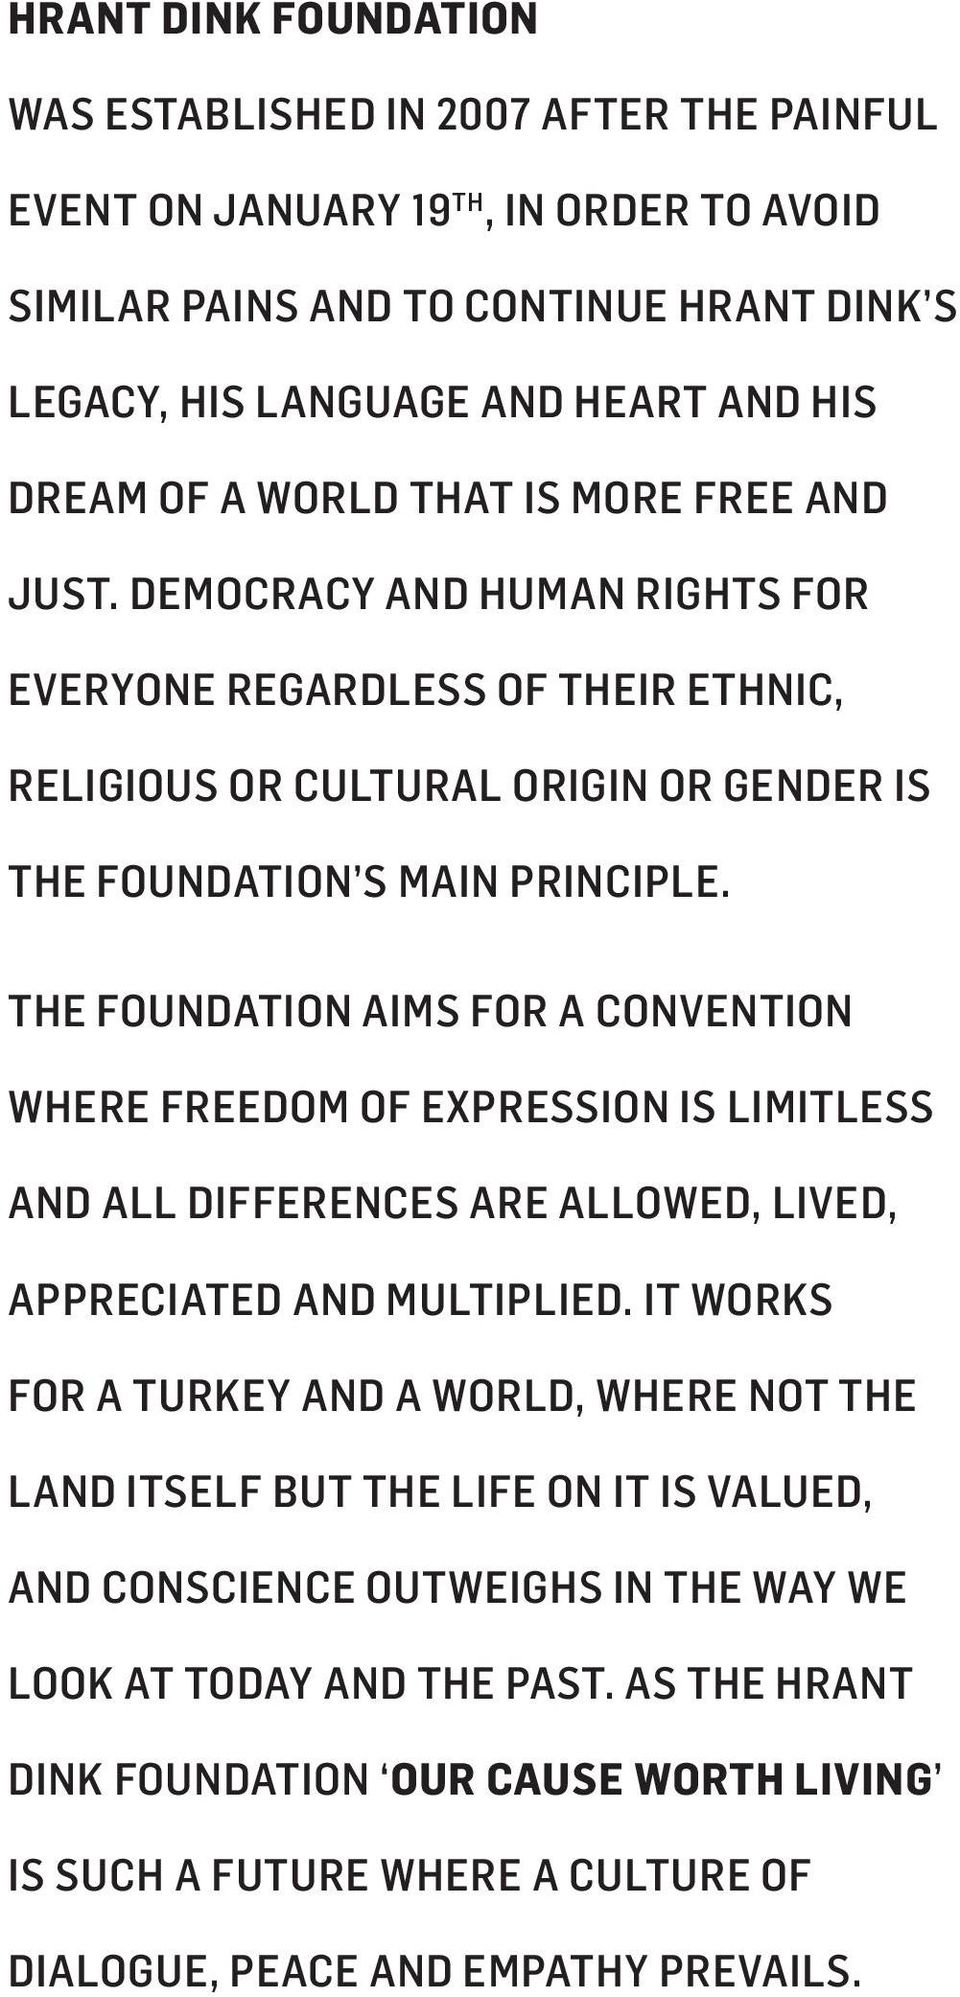 THE FOUNDATION AIMS FOR A CONVENTION WHERE FREEDOM OF EXPRESSION IS LIMITLESS AND ALL DIFFERENCES ARE ALLOWED, LIVED, APPRECIATED AND MULTIPLIED.